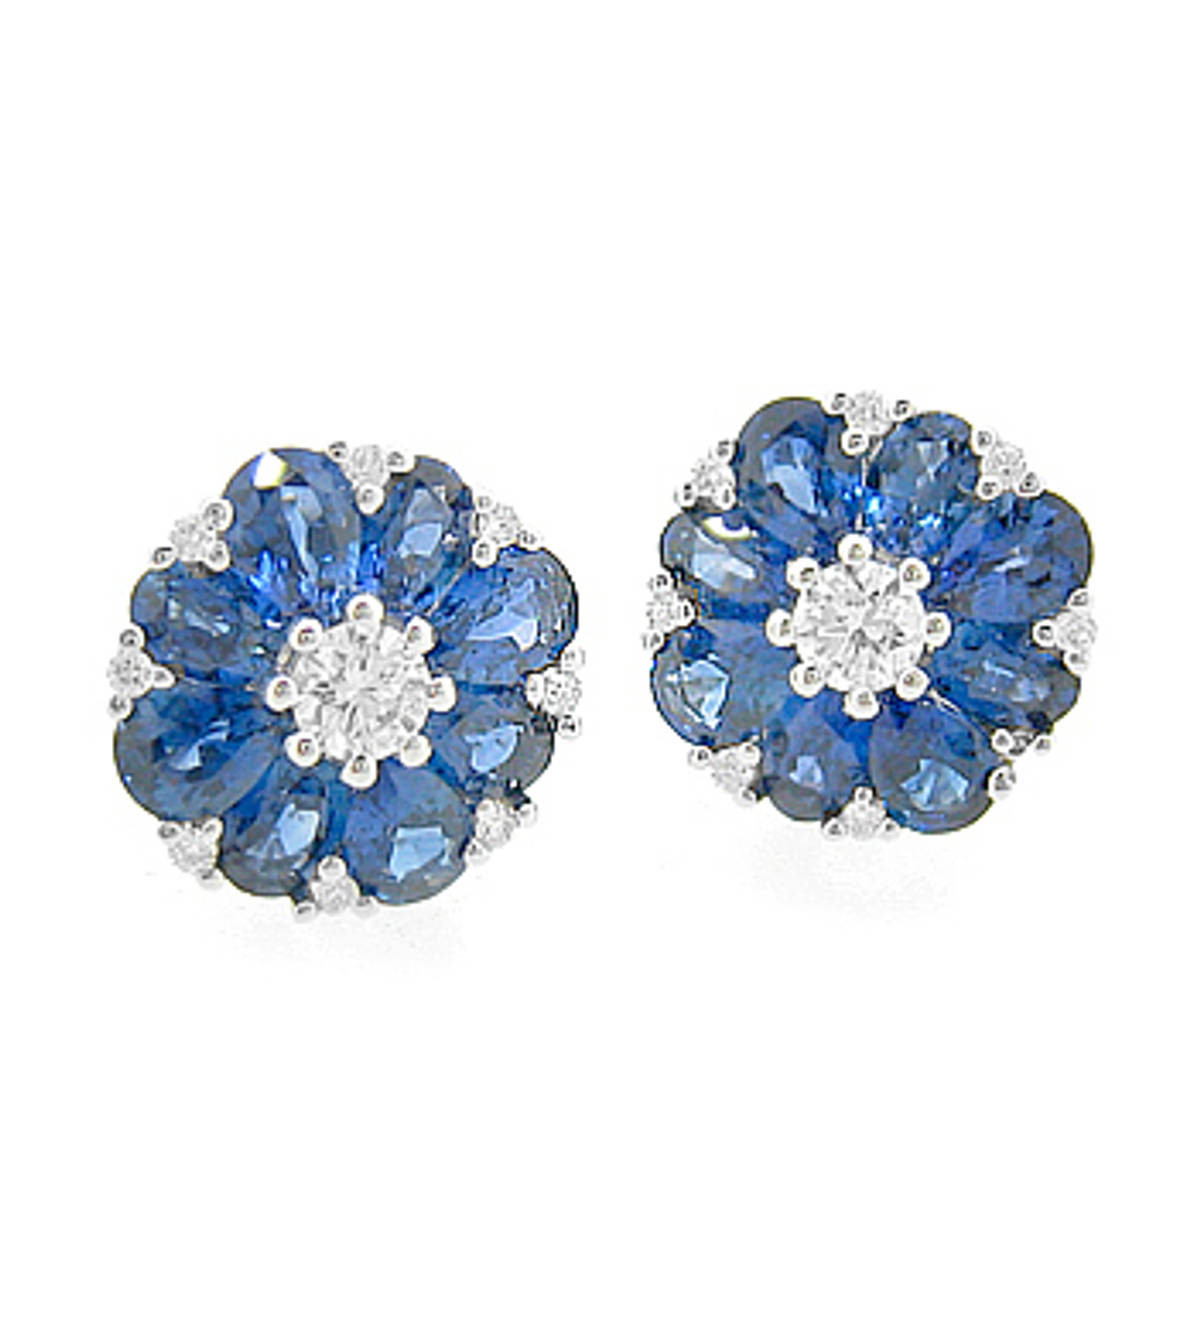 Sapphire and diamond cluster stud earrings in 18 ct white gold